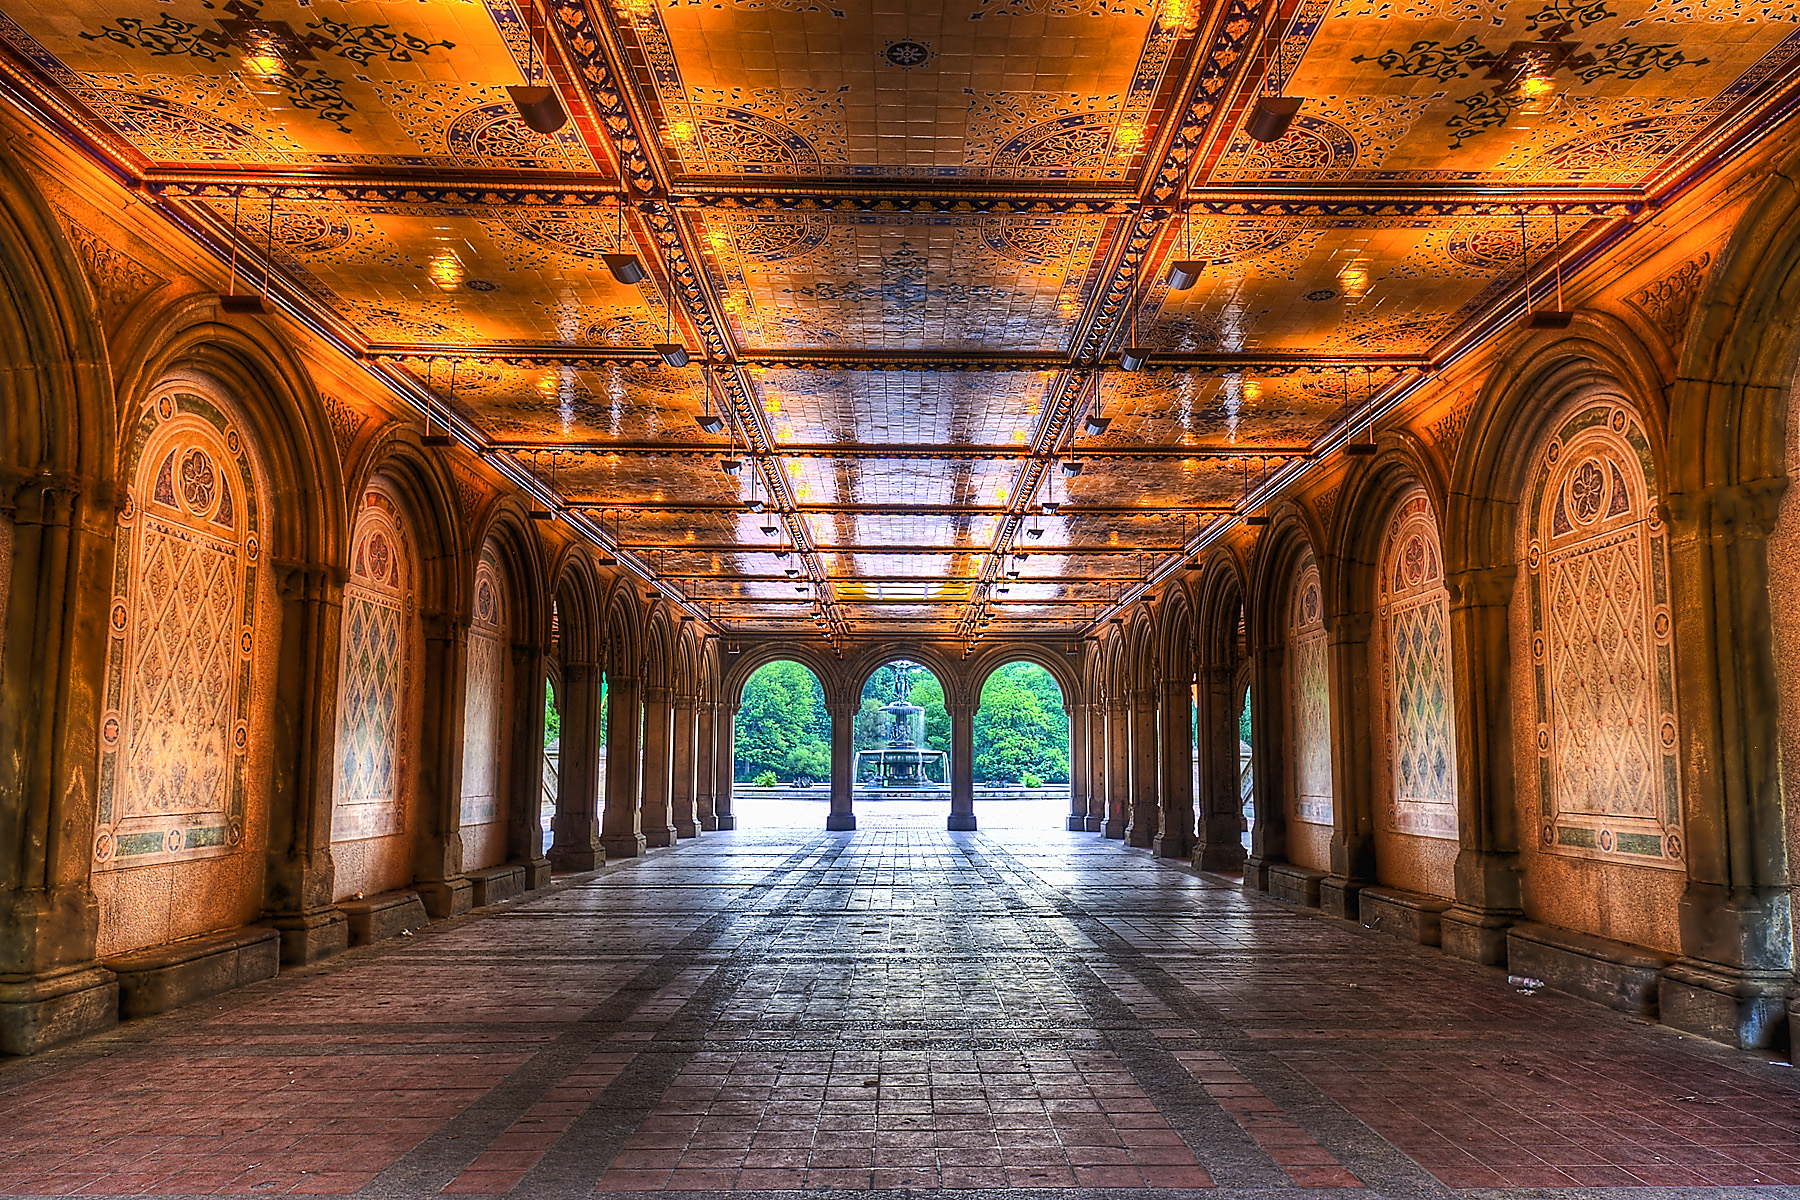 Early_morning_view_under_Bethesda_Terrace,_Central_Park,_NYC.jpg